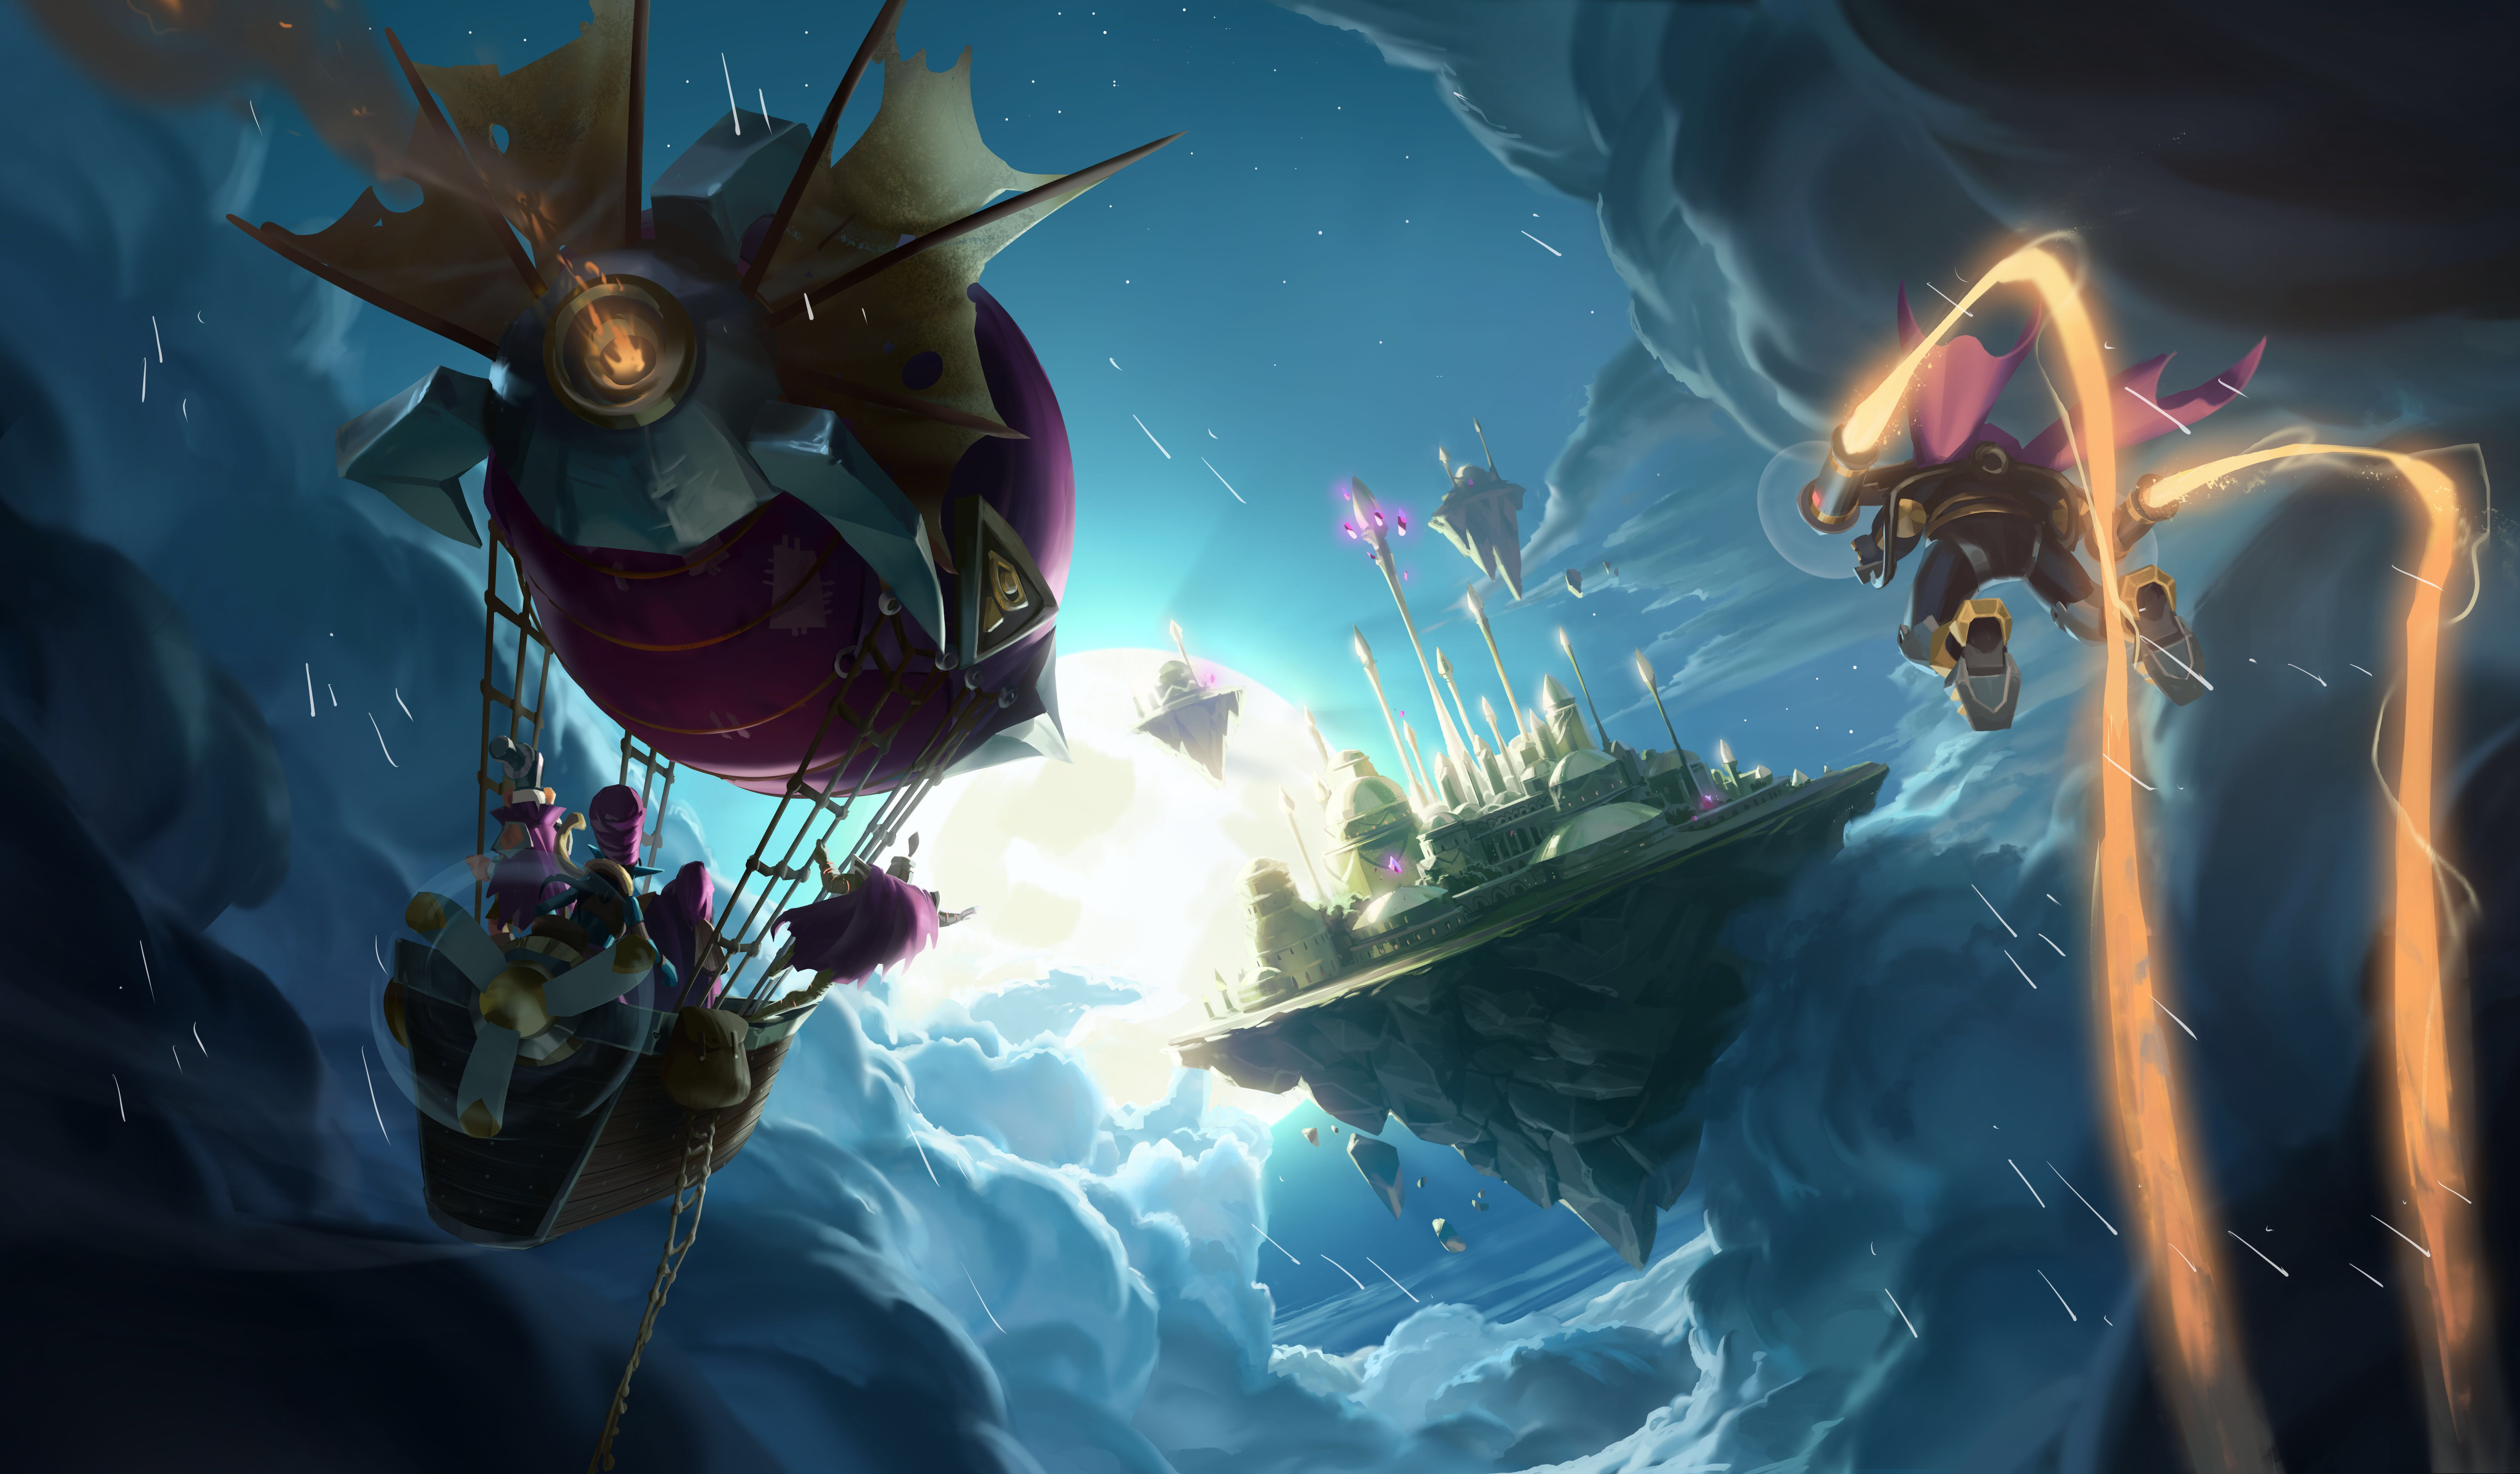 Pin by noon Dvnk on World of Warcraft Hearthstone wallpaper 8000x4679